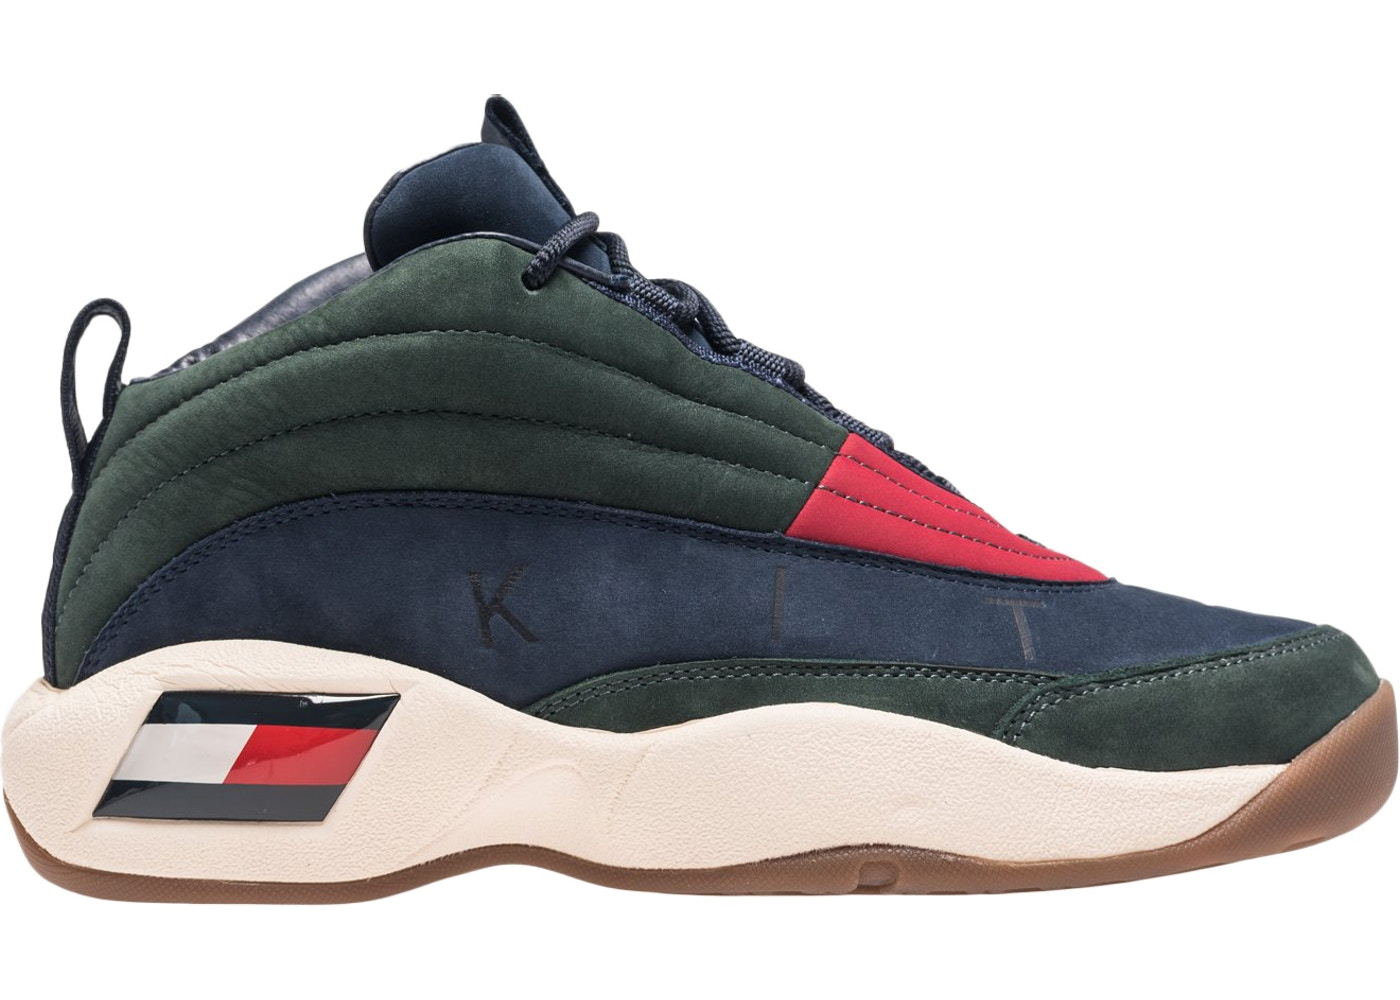 60f7a698 Tommy Hilfiger Skew Lux Basketball Sneaker Kith Green - KH9243-106